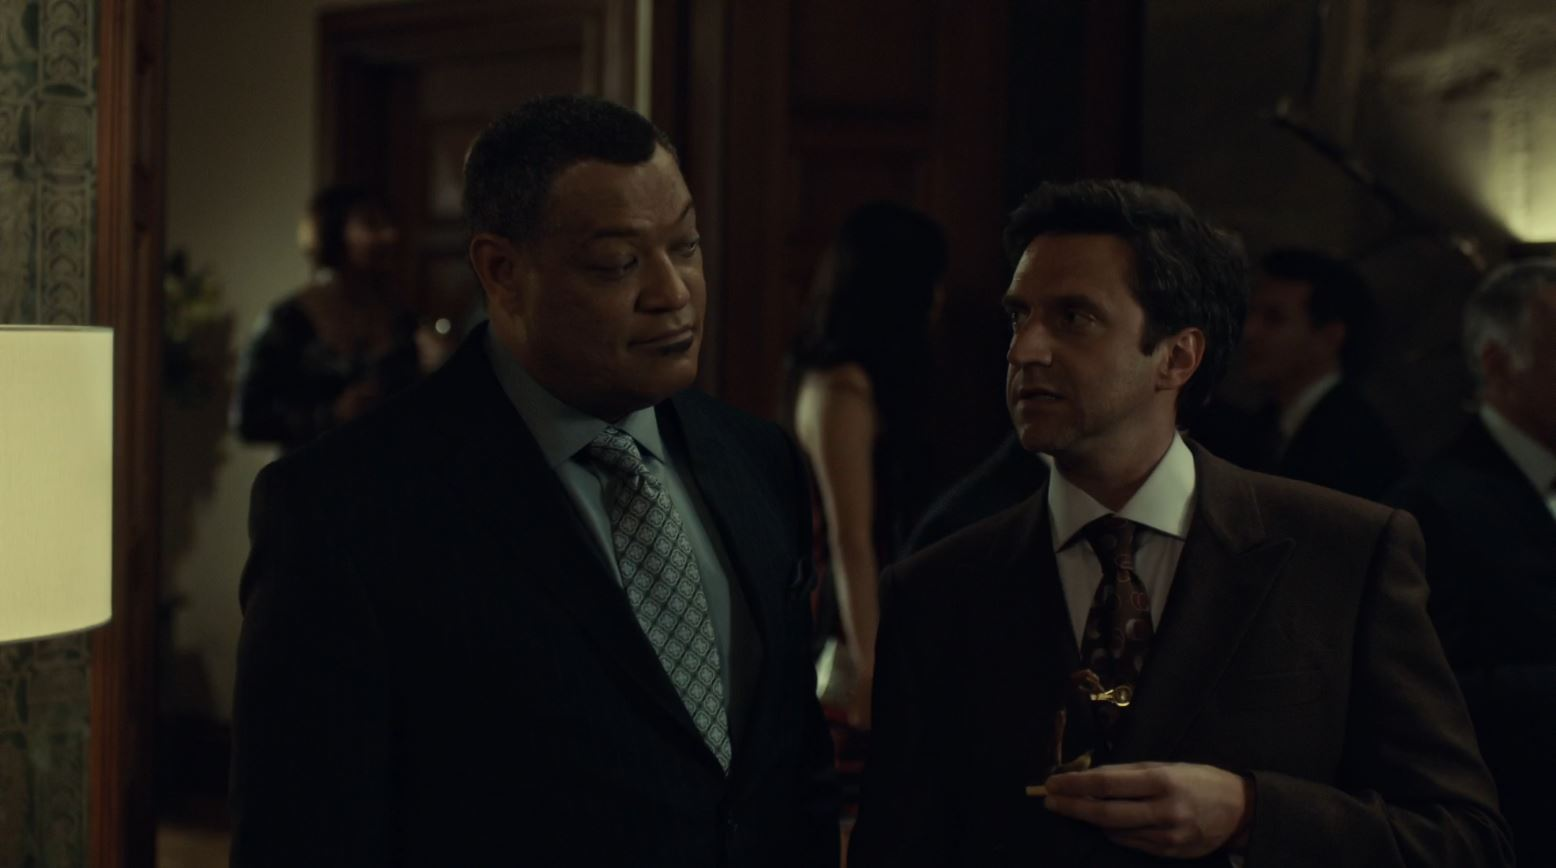 Hannibal S2Ep6 Futamono Review - Dr Chilton and Crawfor discussing the food